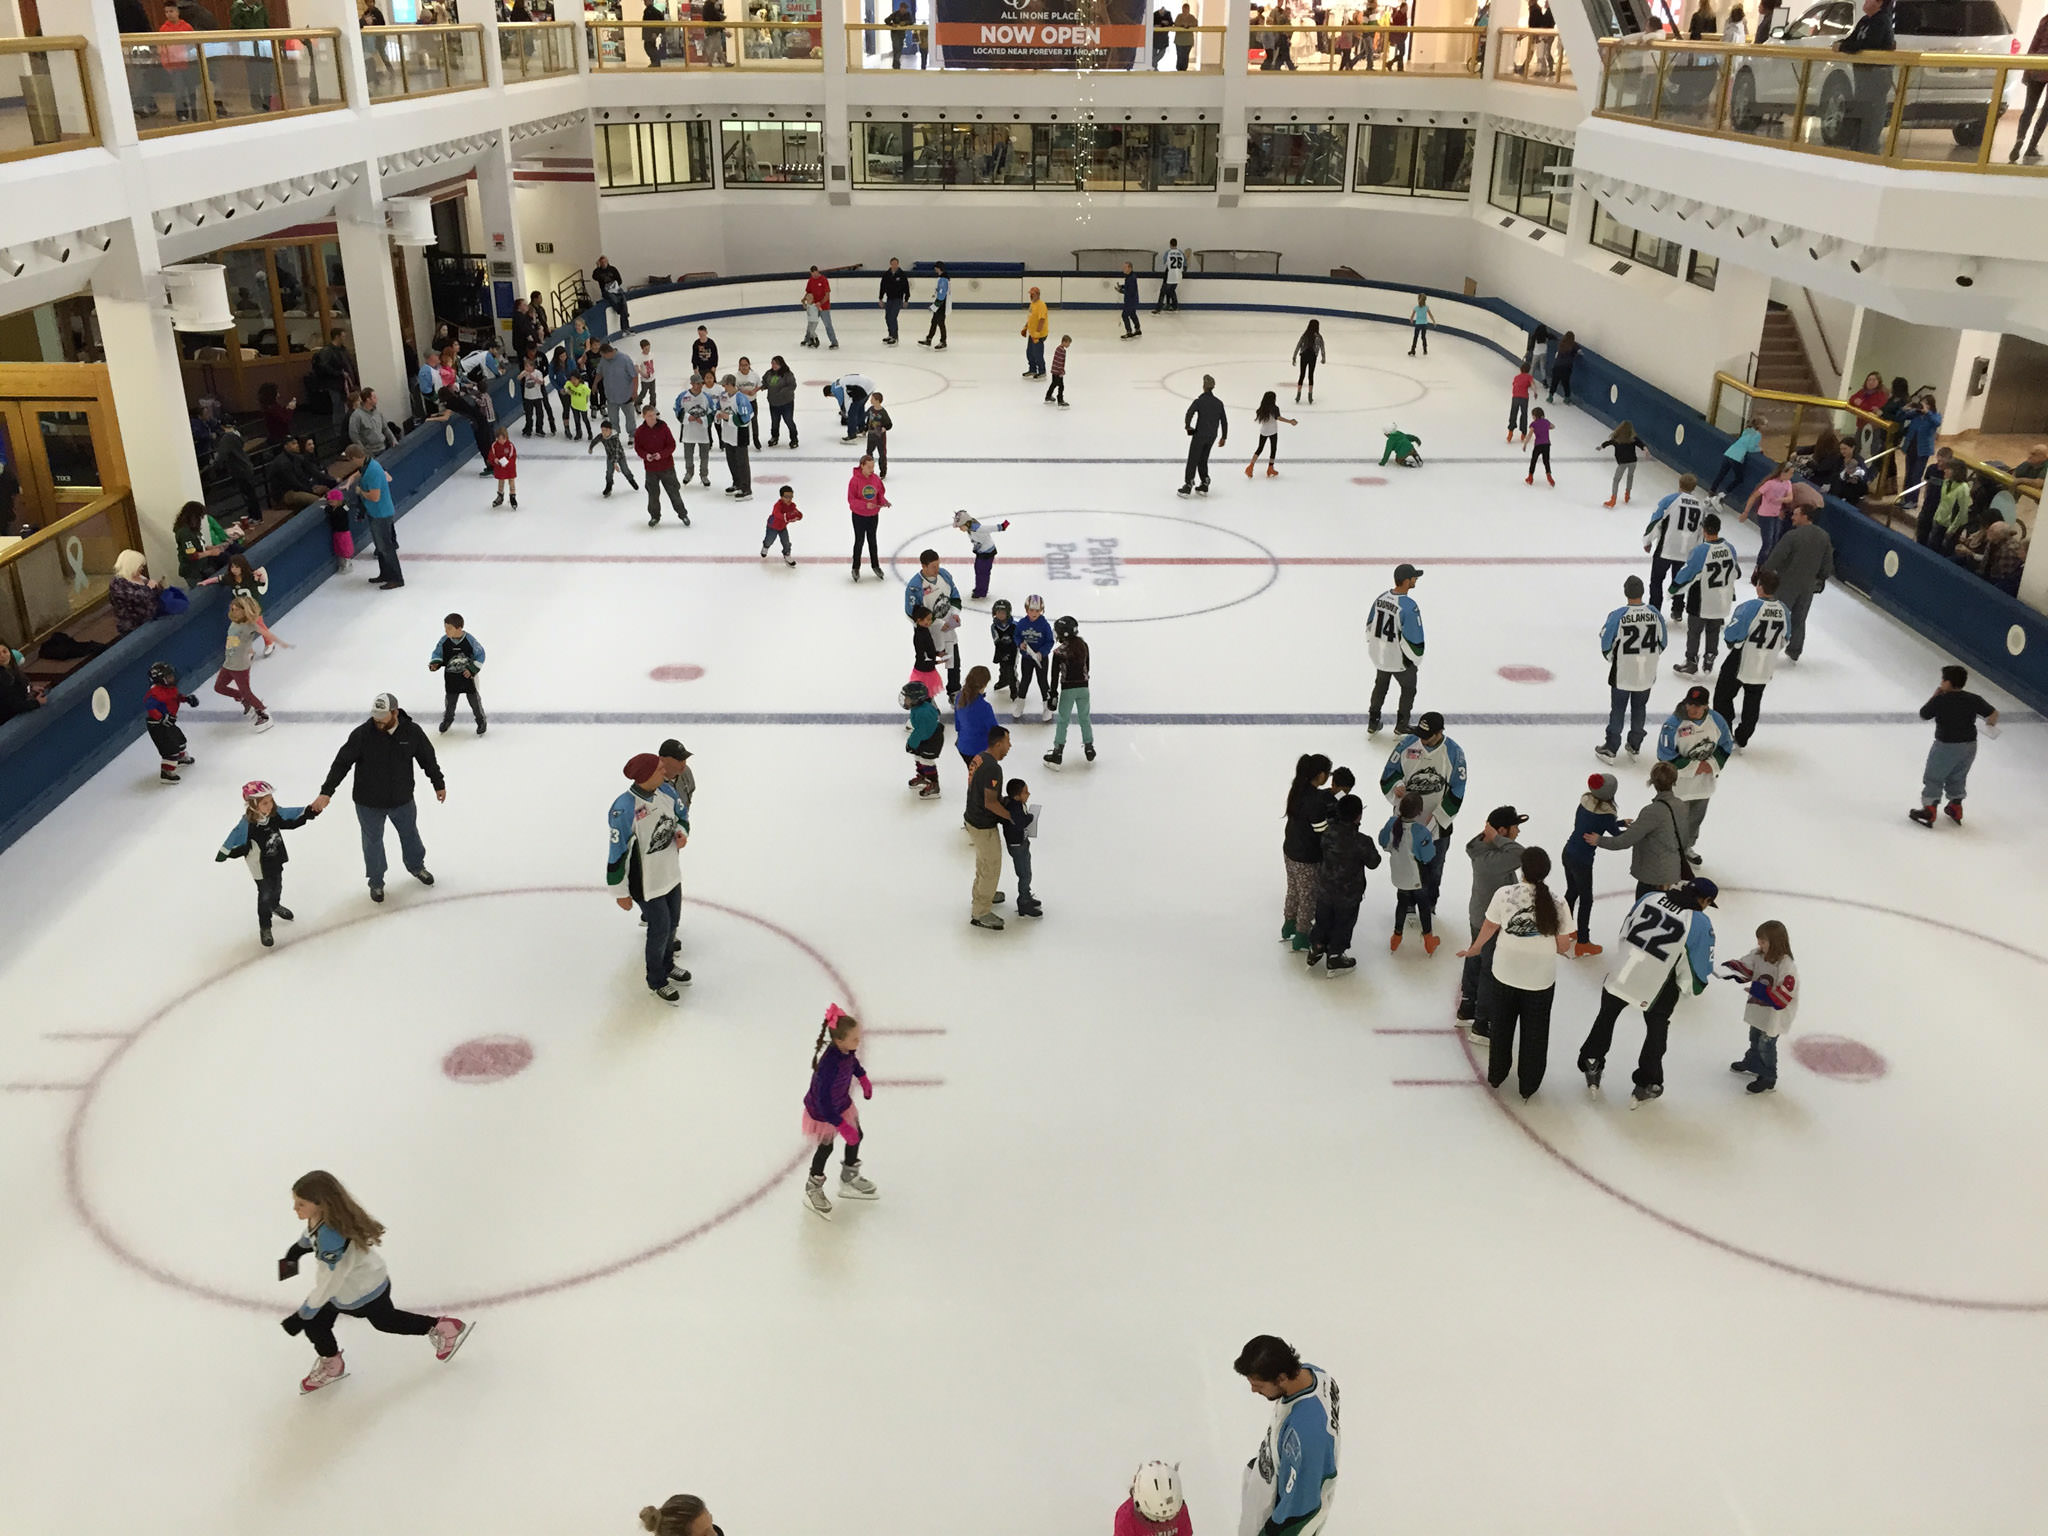 The skating rink at Dimond Center